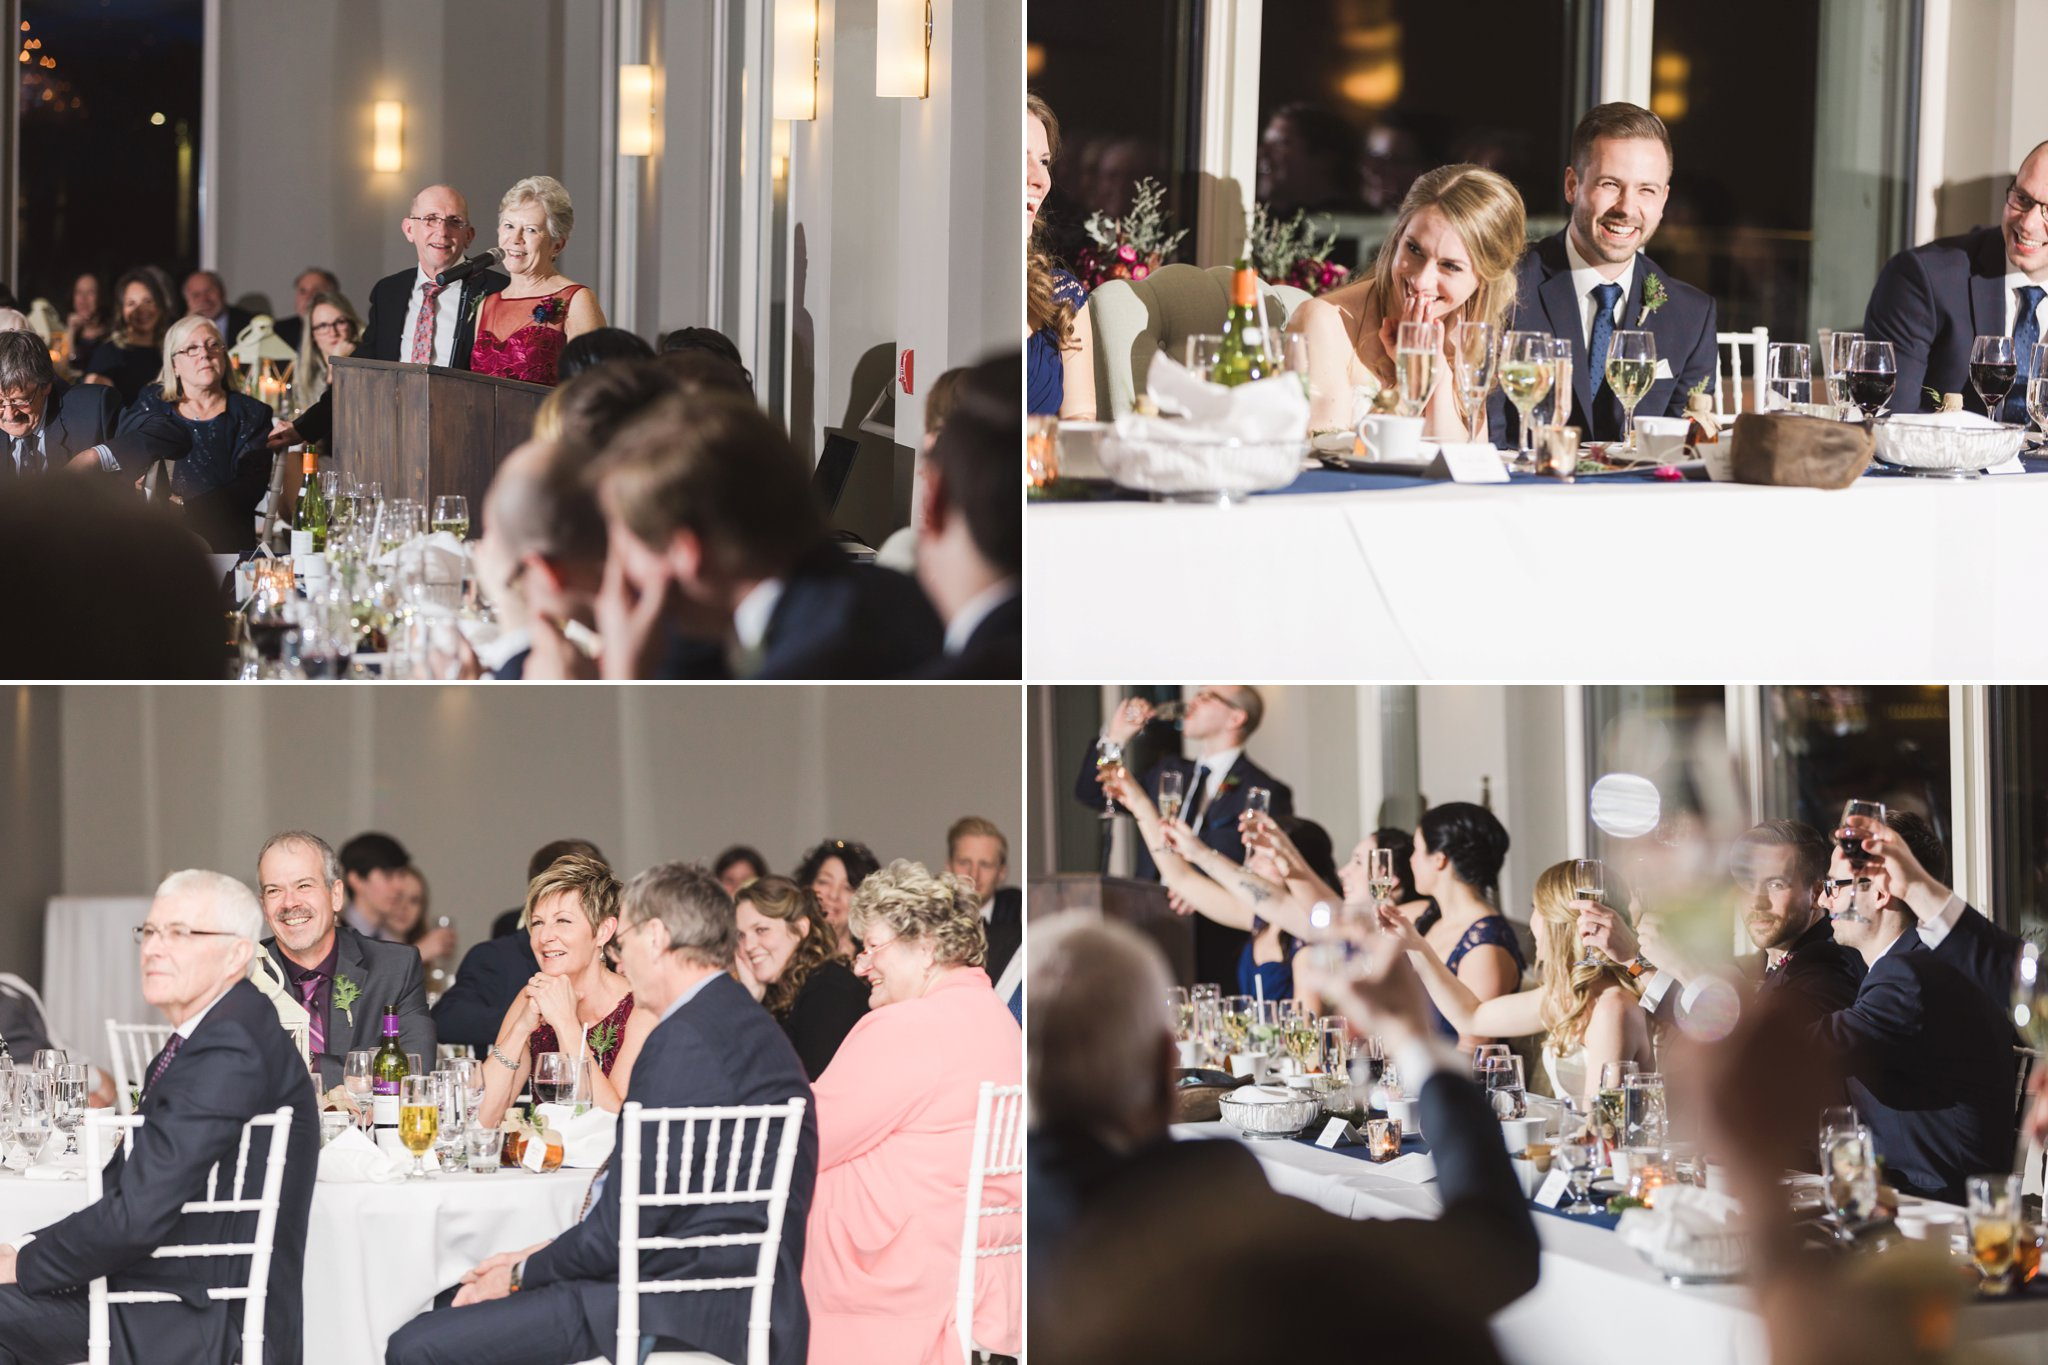 Toasts and speeches at the Winter wedding at Le Belvedere